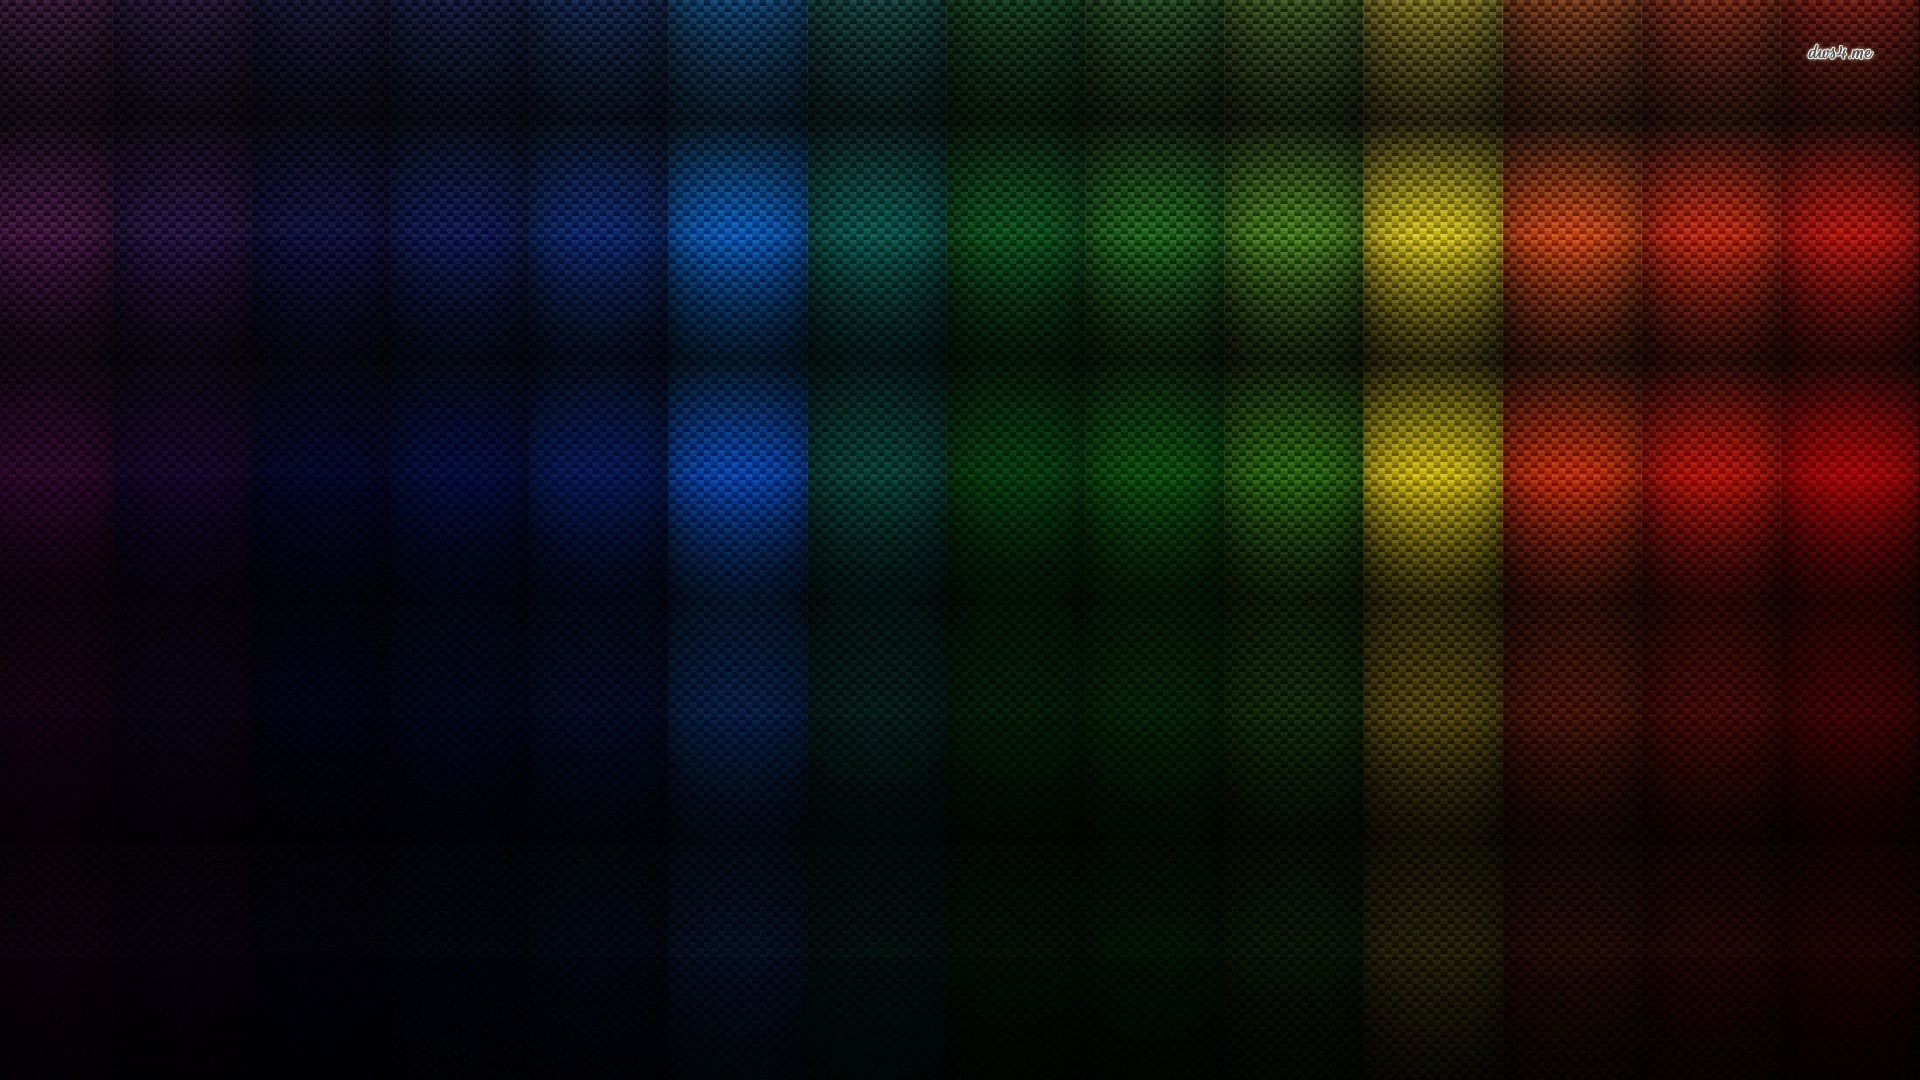 Colorful carbon fiber wallpaper – Abstract wallpapers – #3590